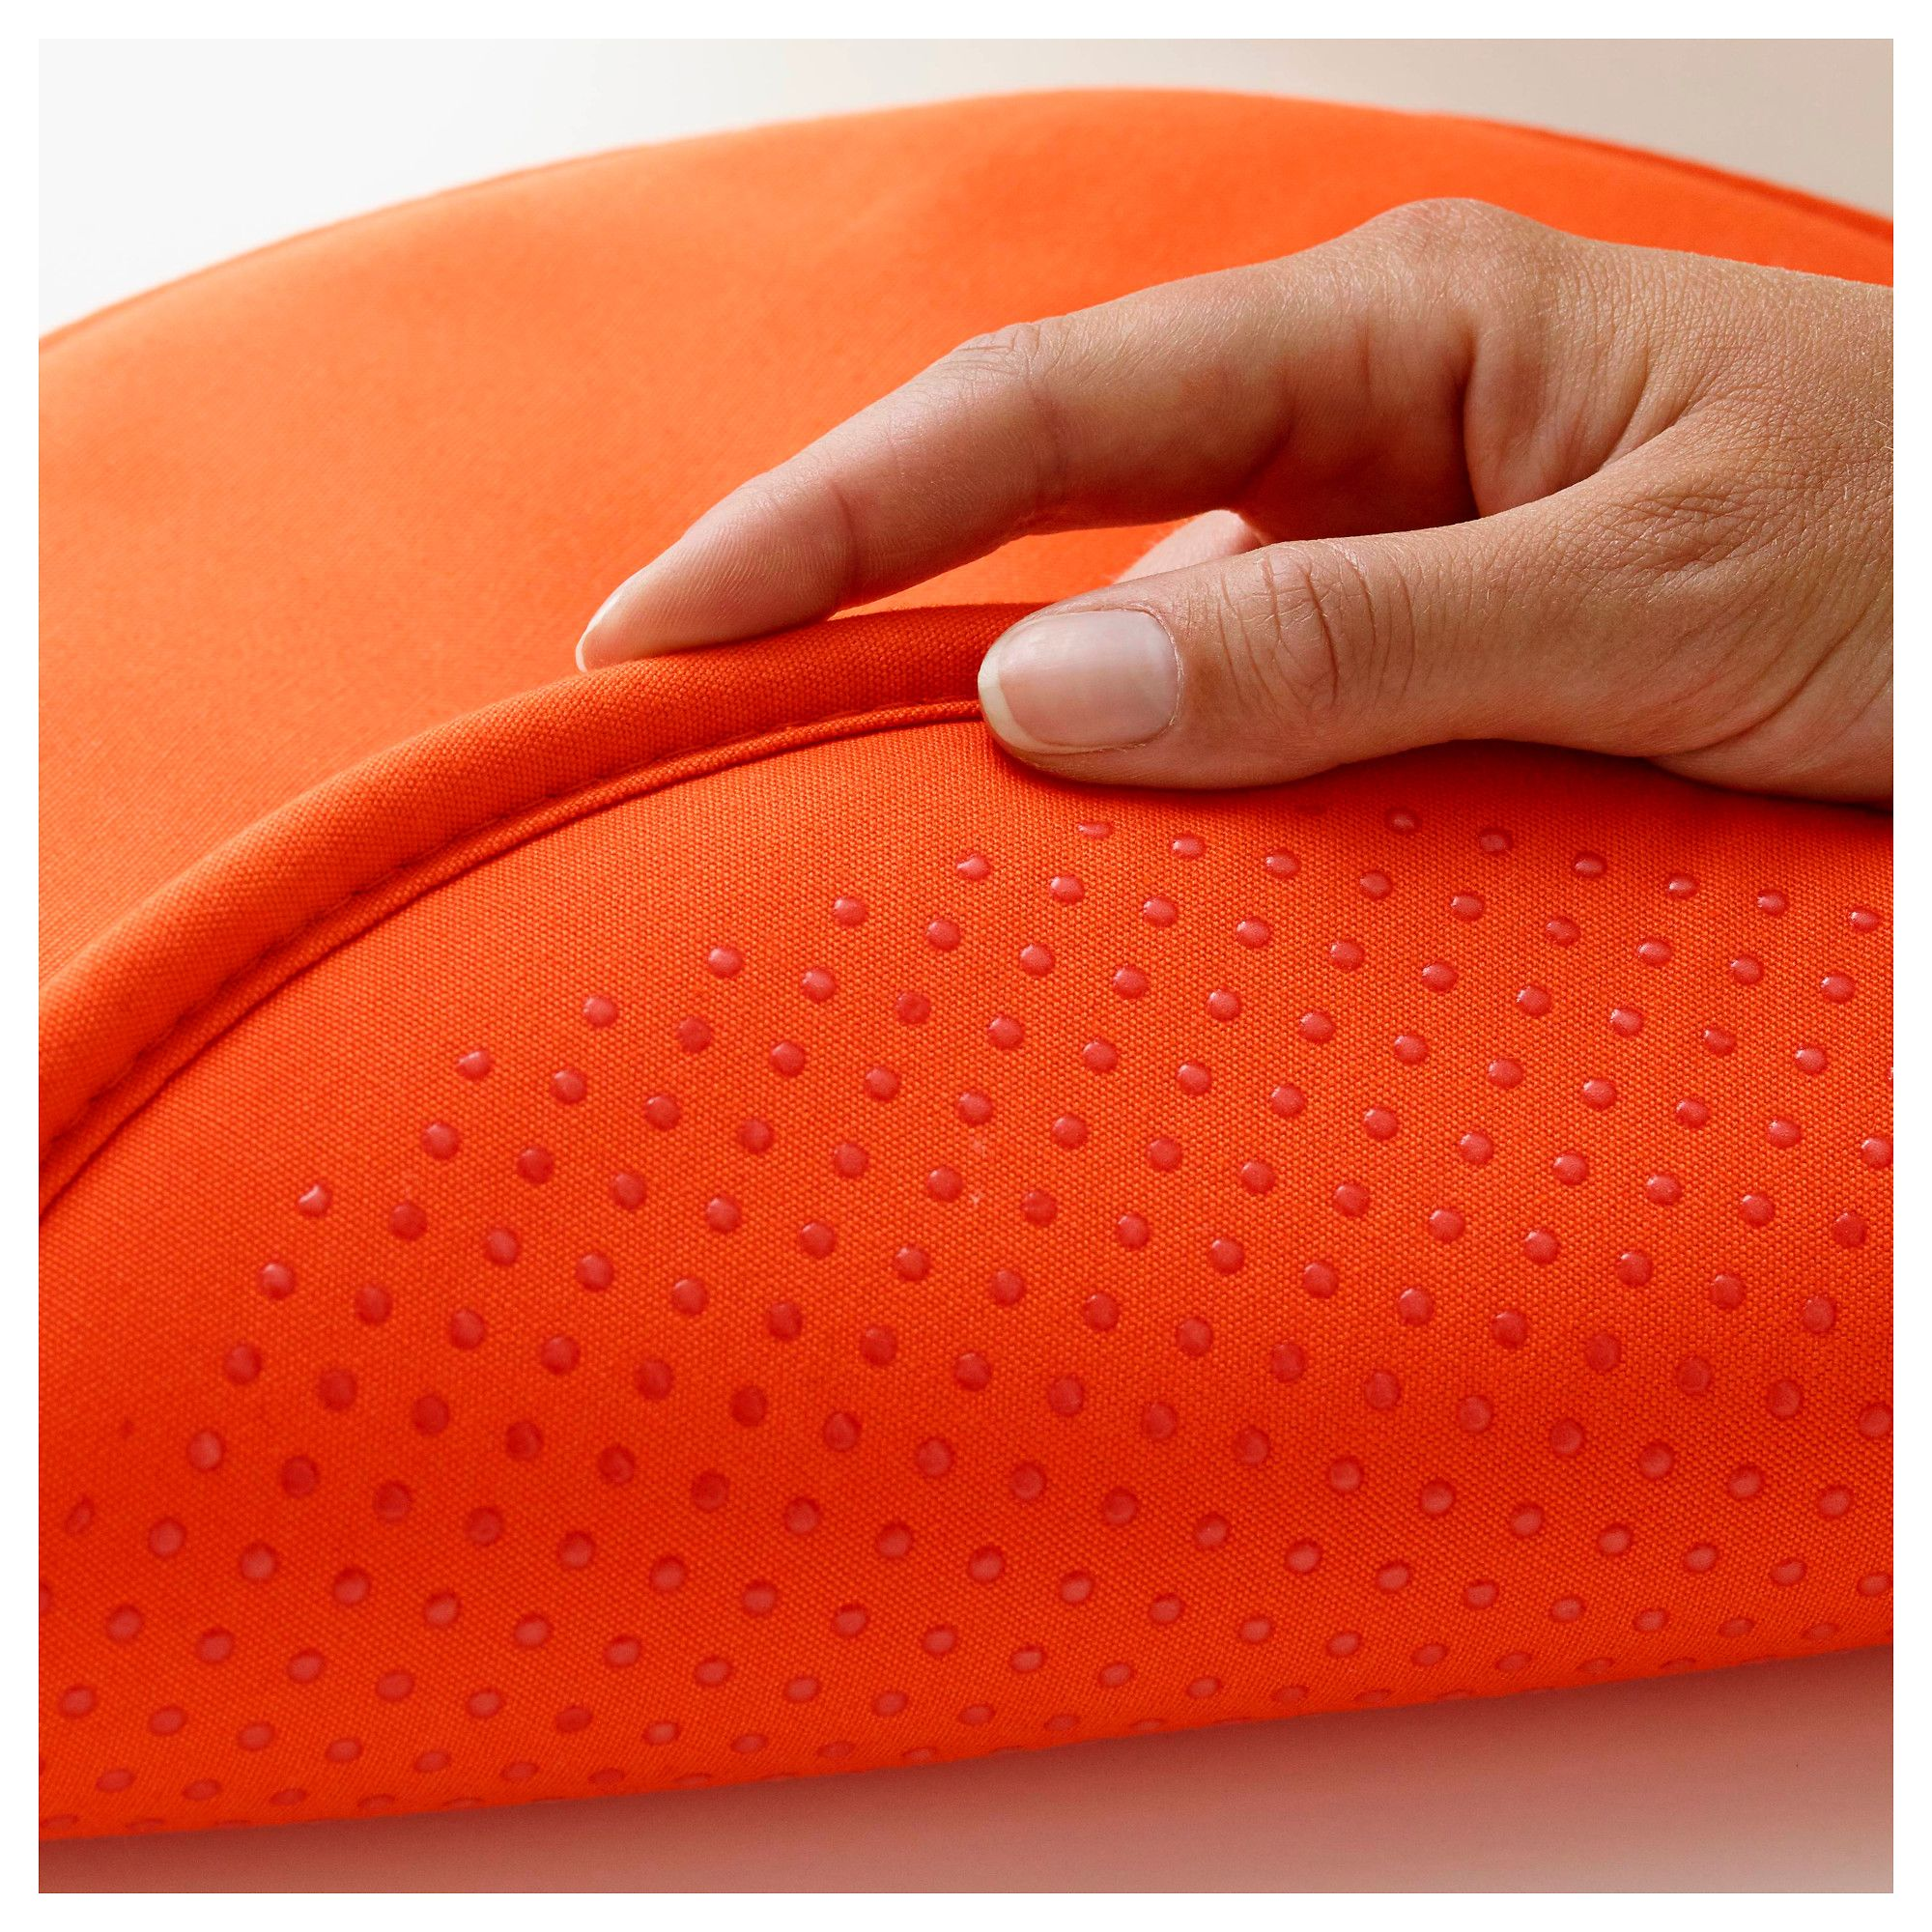 Shop for Furniture, Home Accessories & More | Chair pads